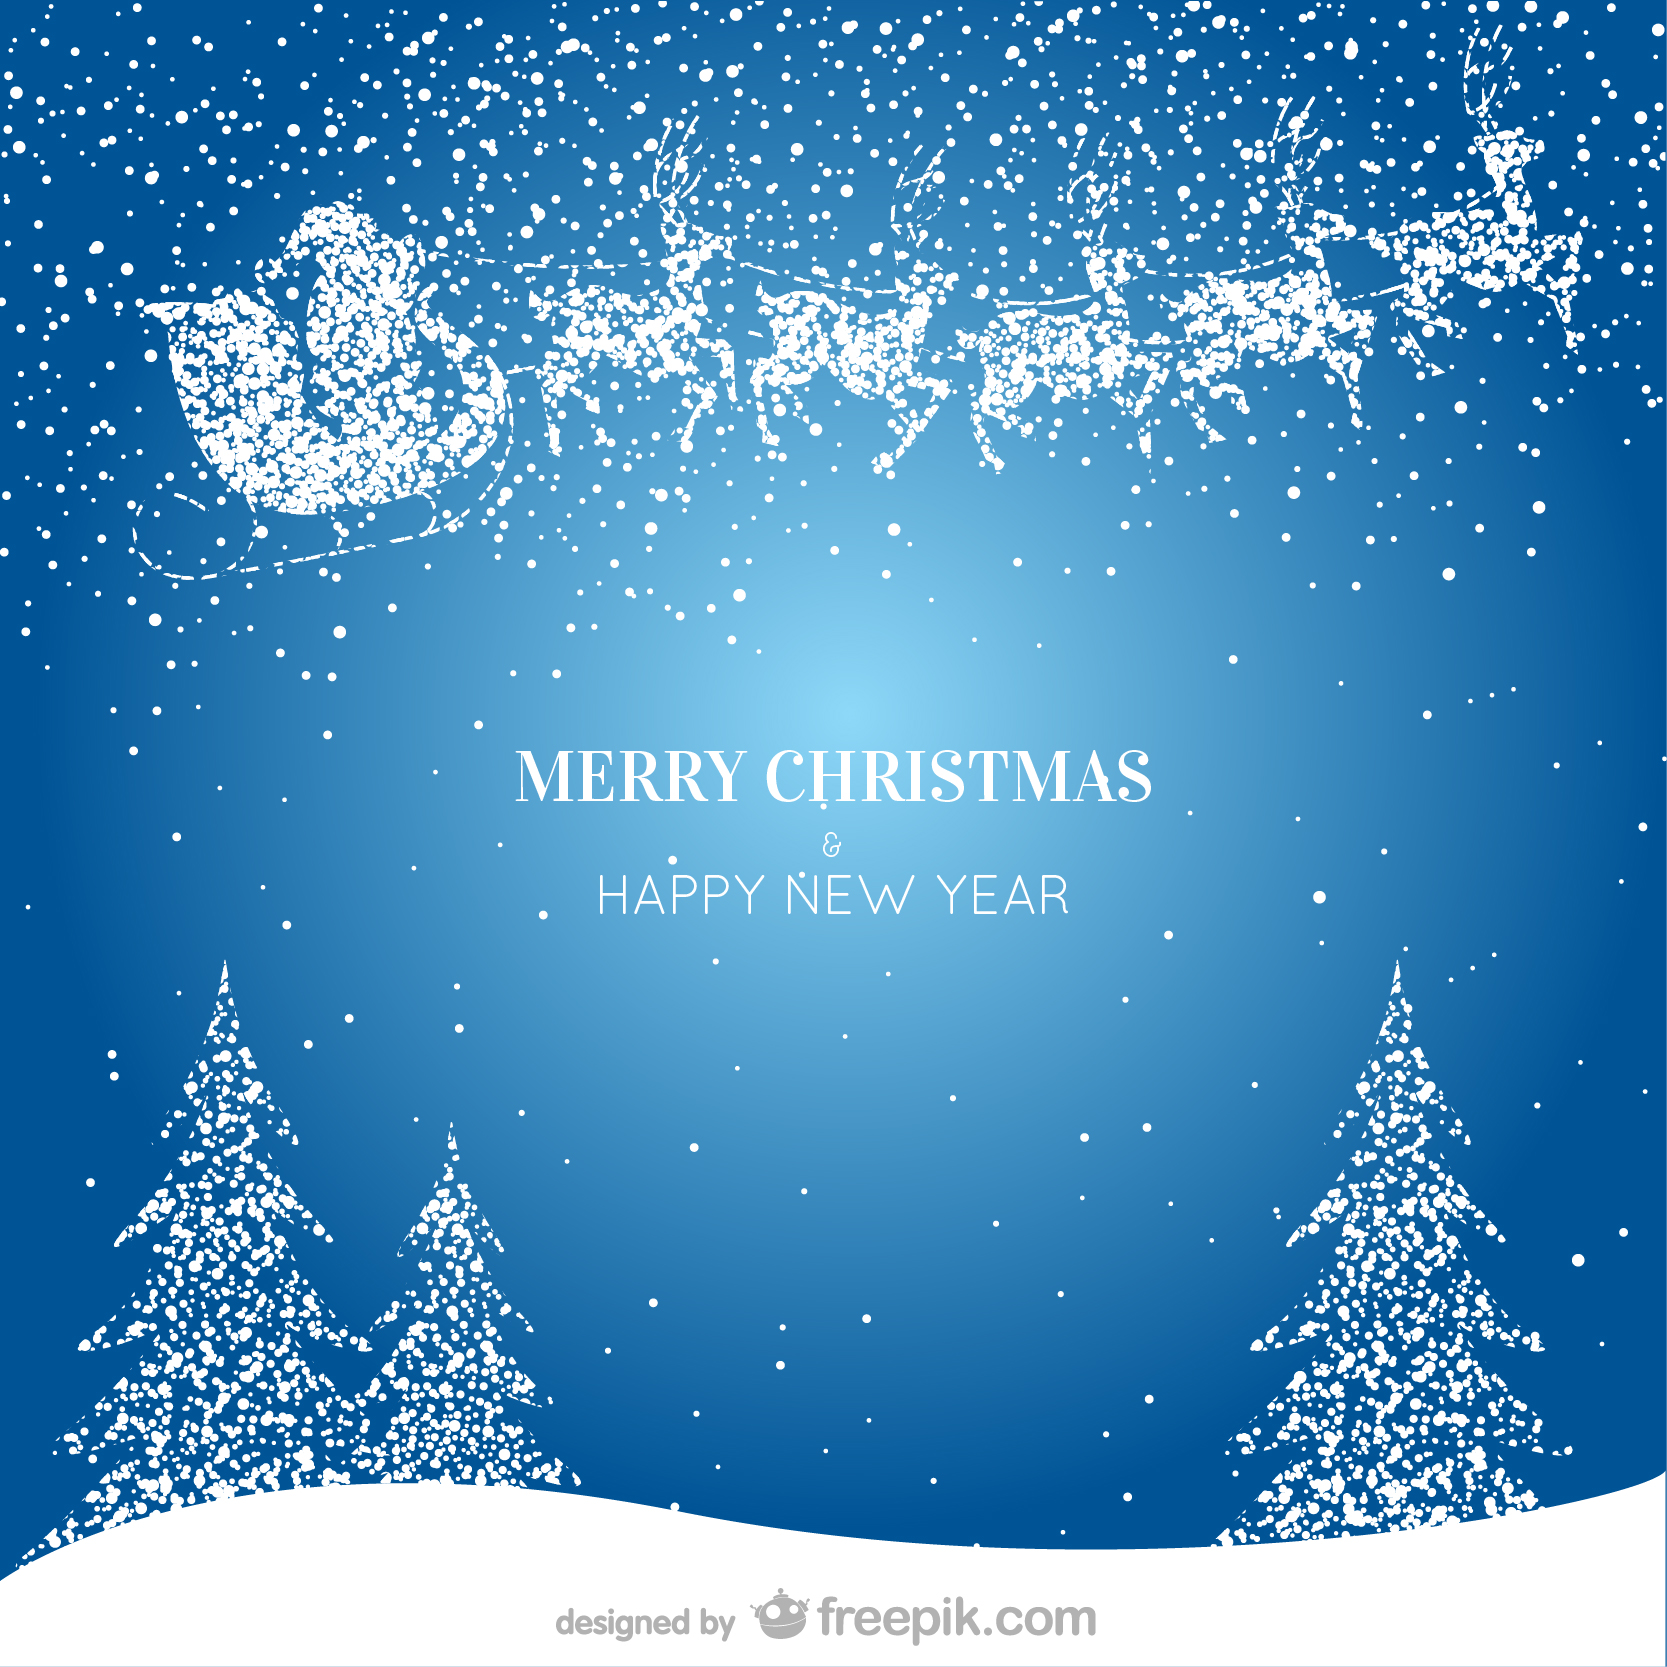 Frohe Weihnachten Und Happy New Year.The Remech Wishes You A Merry Christmas And A Happy New Year Remech